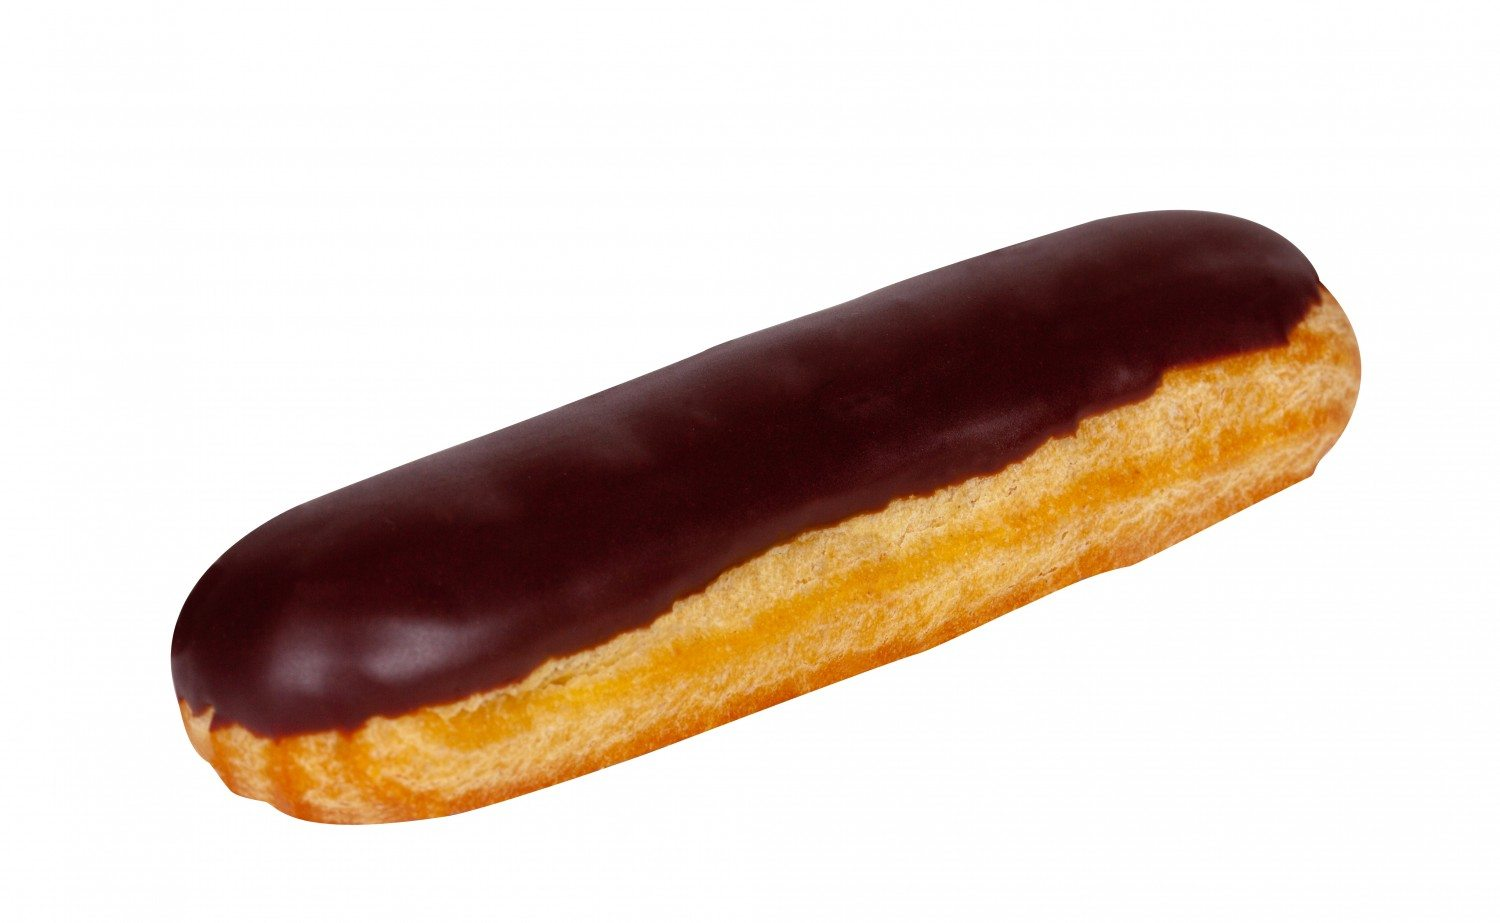 National Chocolate Eclair Day on clair